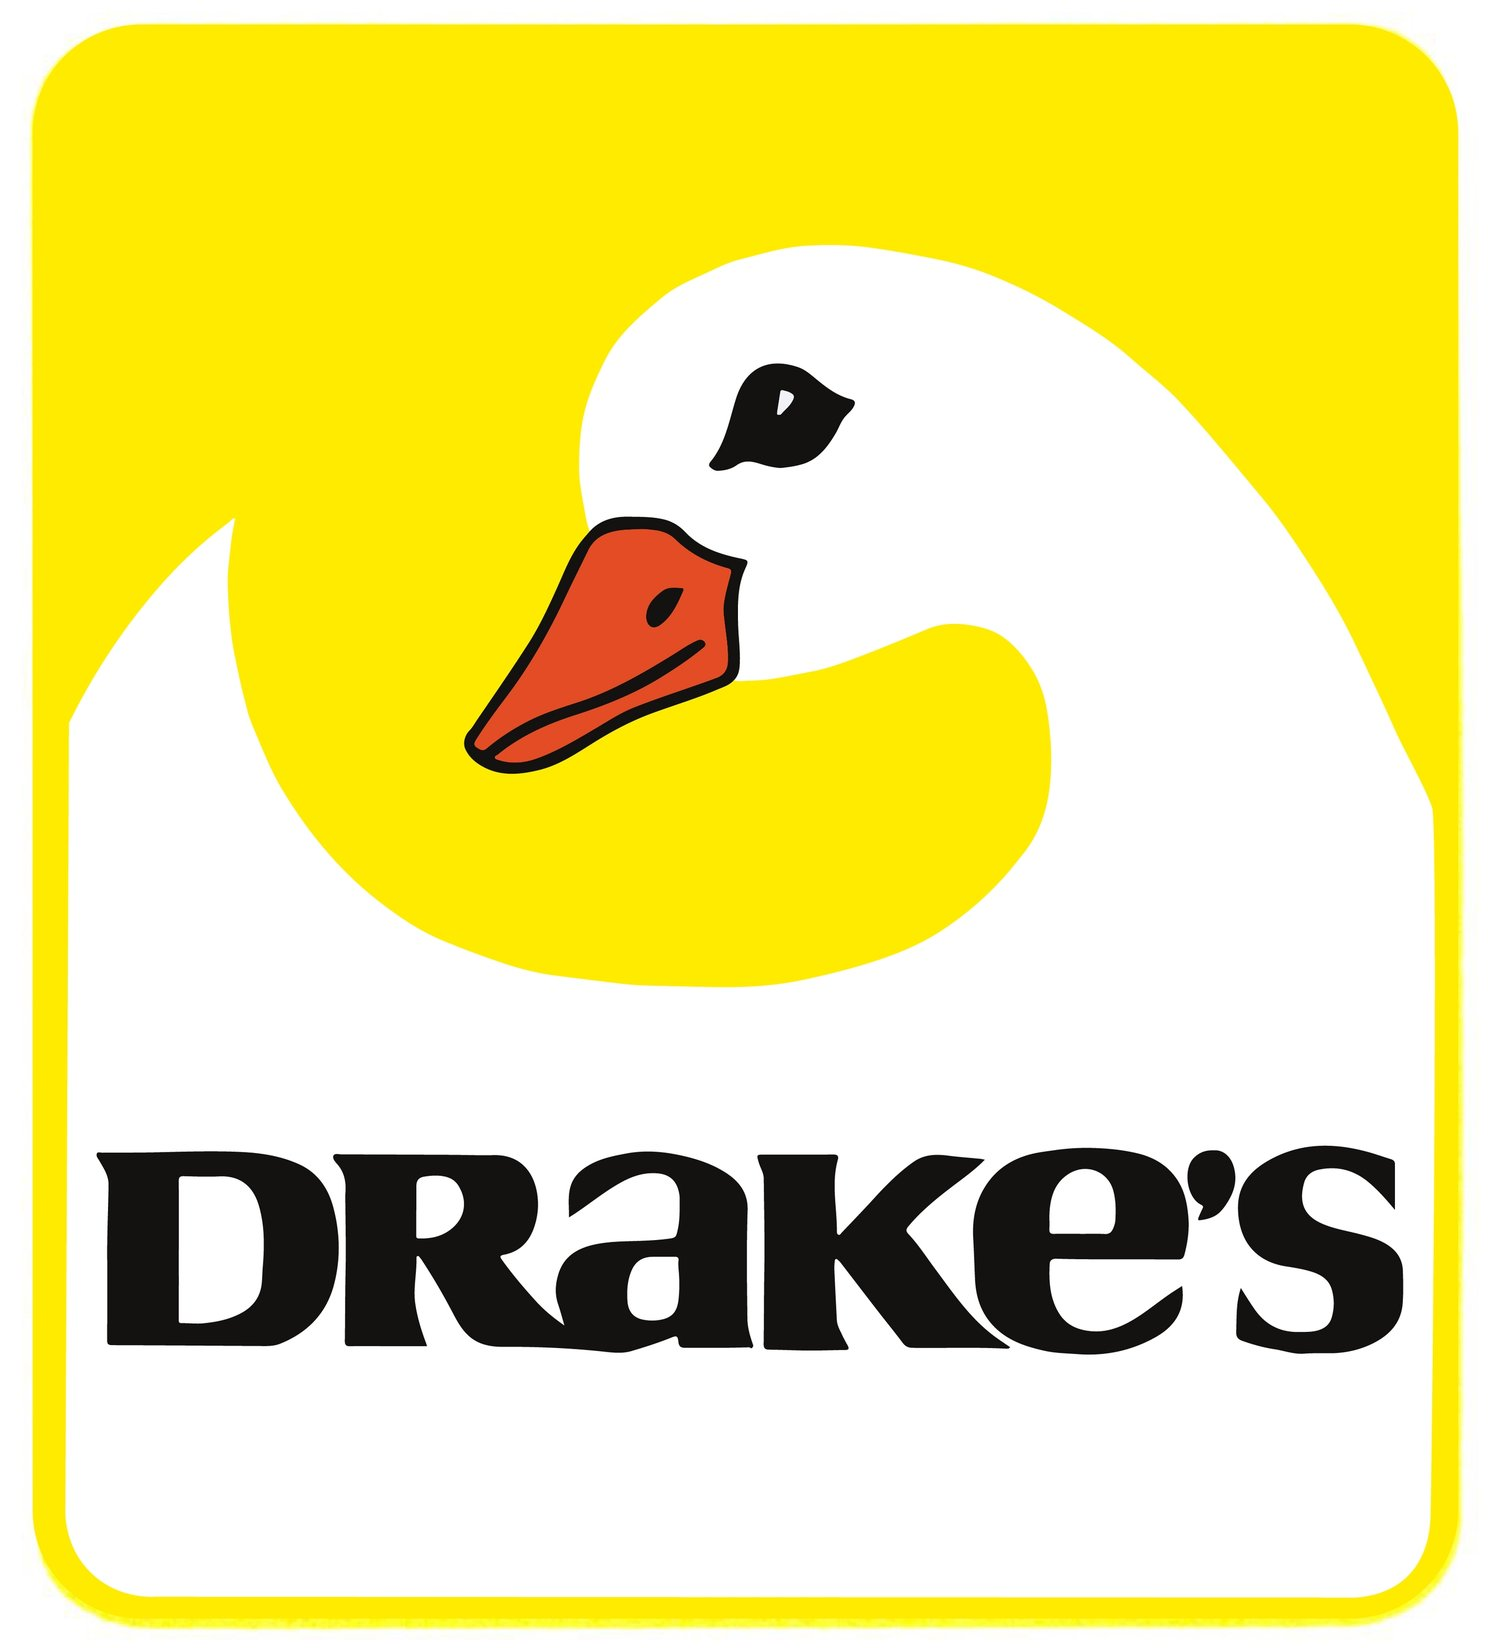 Drakes Batter Mix Co